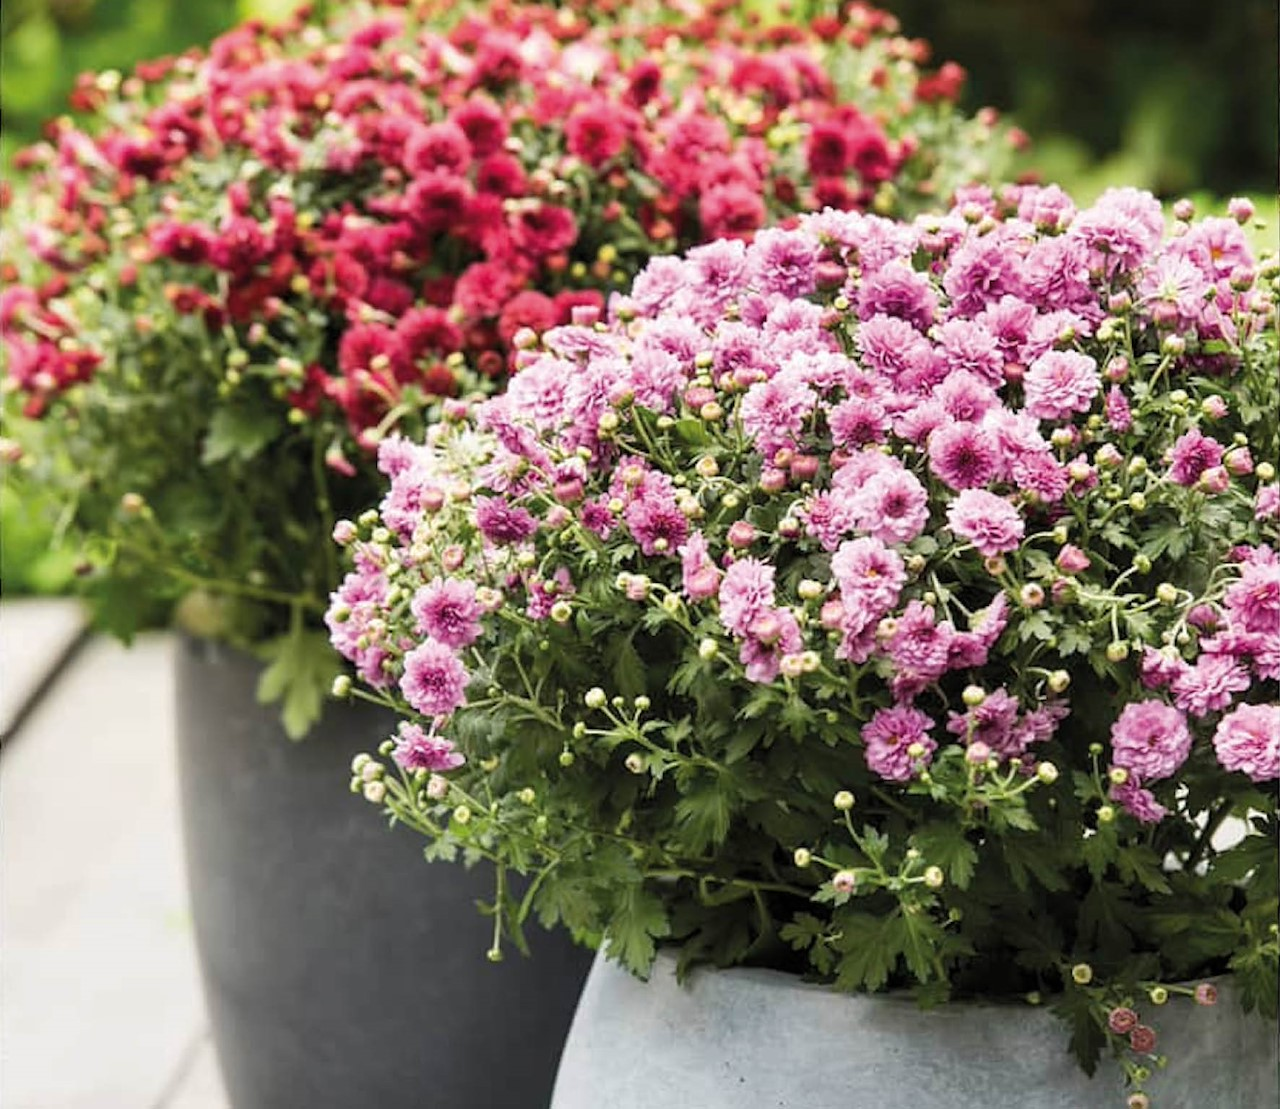 Bolchrysanten: ouderwets of helemaal hip?